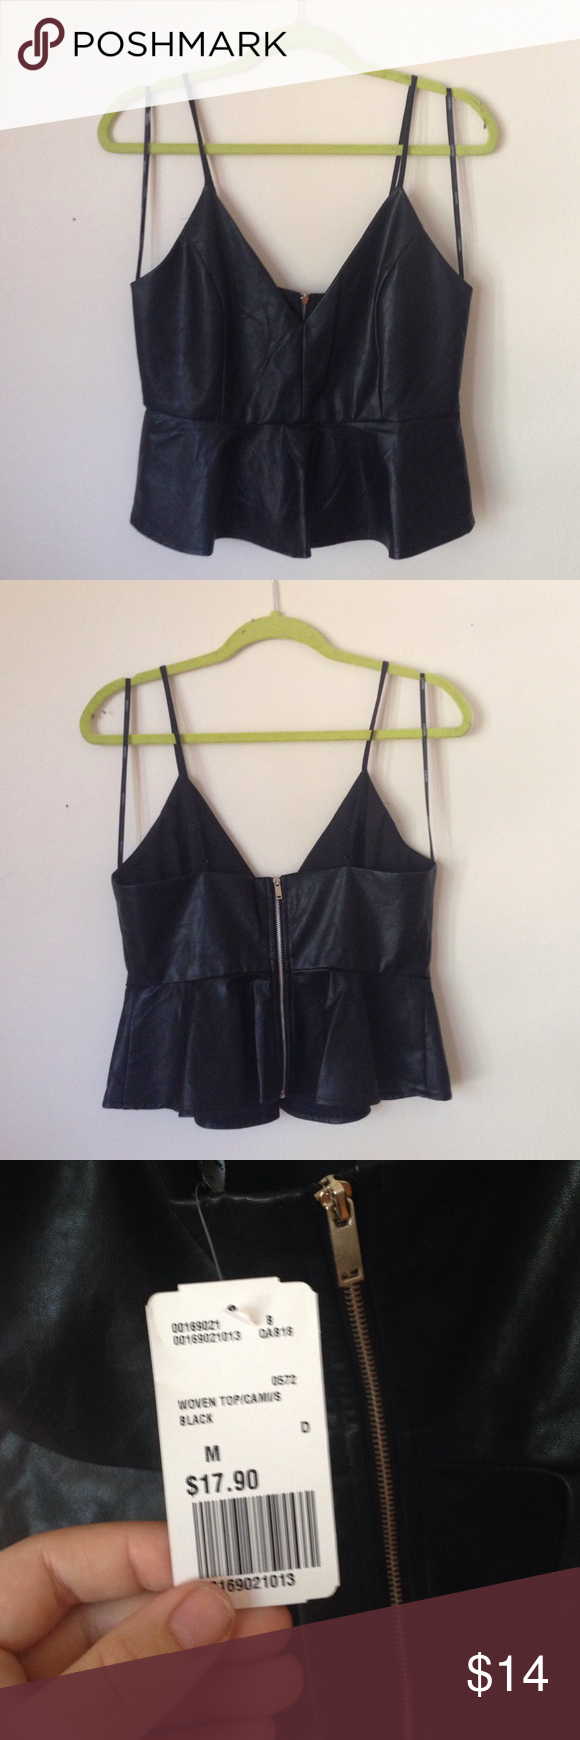 Club faux leather crop v neck peplum top zip back Super cute faux leather clubbing top / festival / health goth look- fully lined - zip up back / peplum / deep v front - adjustable straps- new with tags size medium! Forever 21 Tops Crop Tops